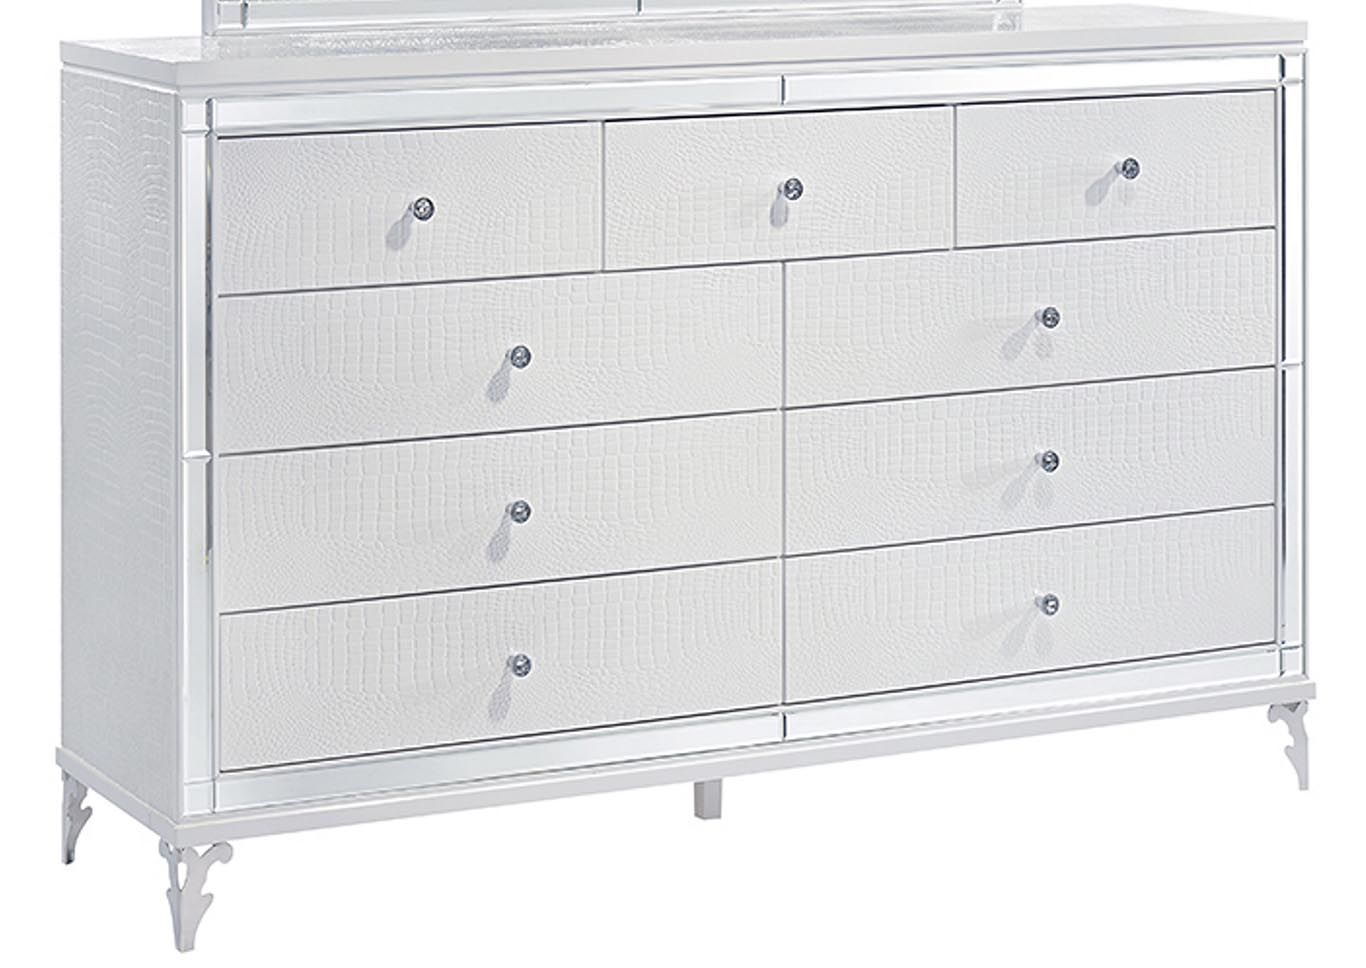 Catalina Metallic White Dresser,Global Furniture USA